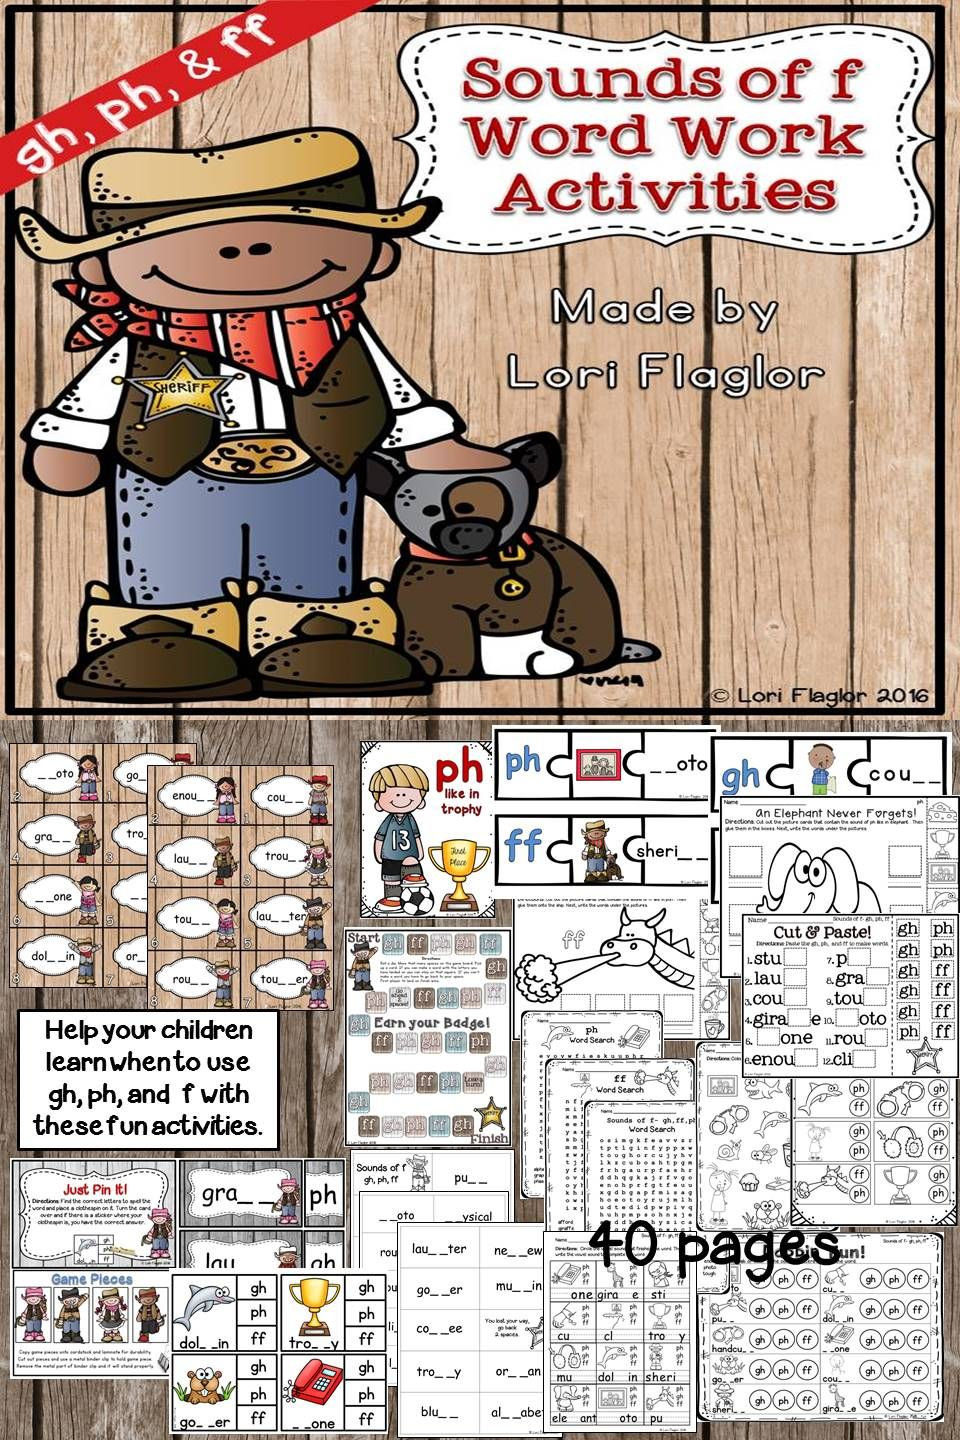 worksheet Ff Phonics Worksheets sounds of f gh ph ff word work activites worksheets and 40 pages activities for your children to master the f